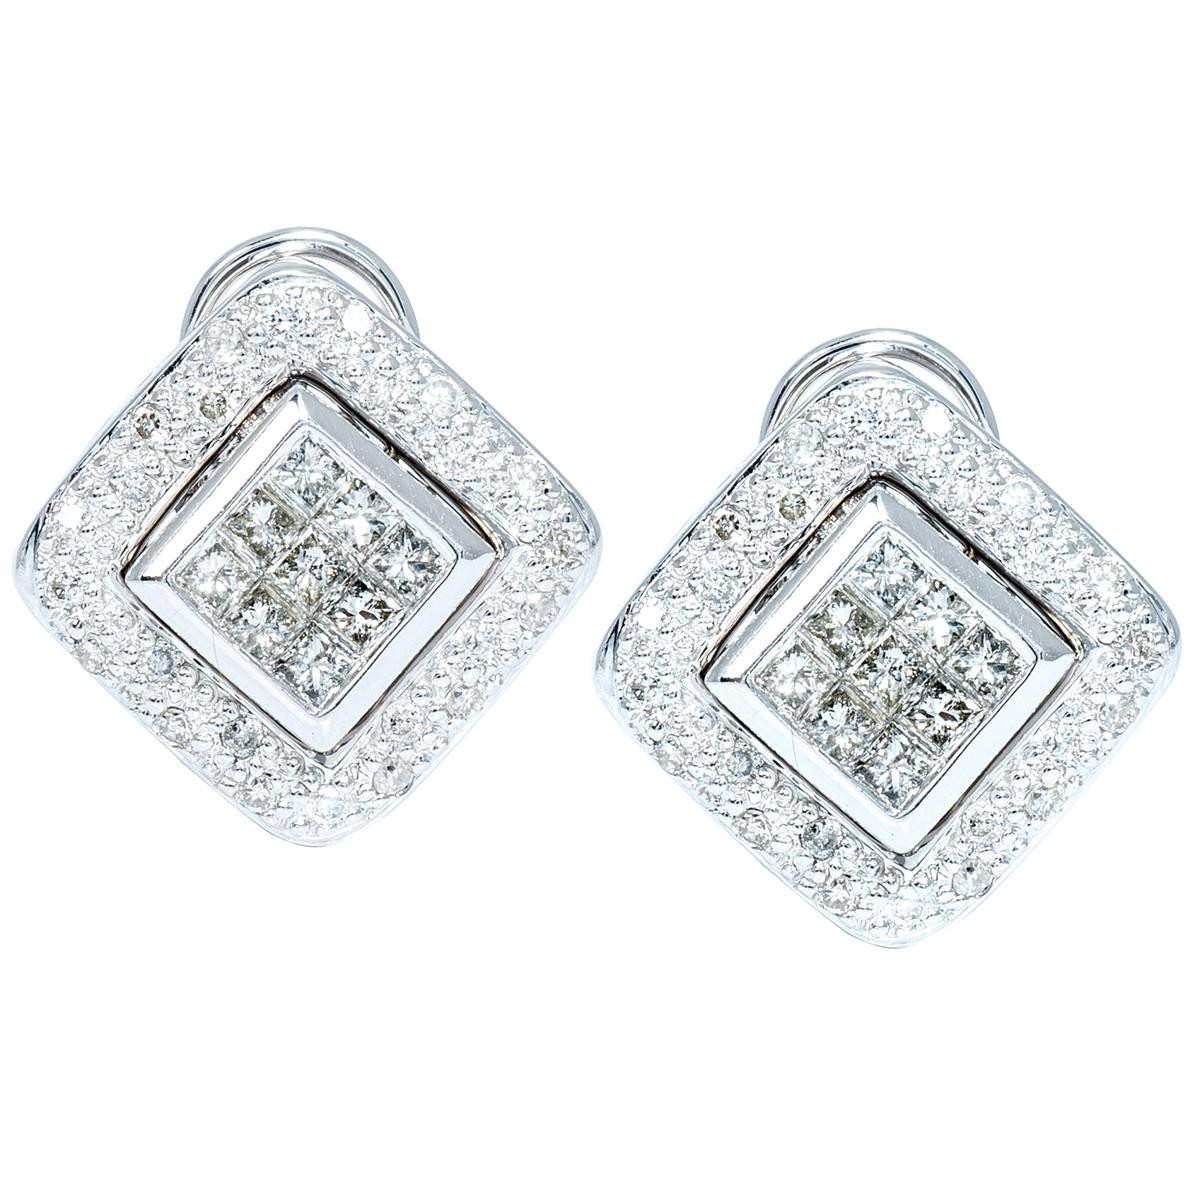 Vintage 0.95 CTW Princess Cut Diamond Earrings